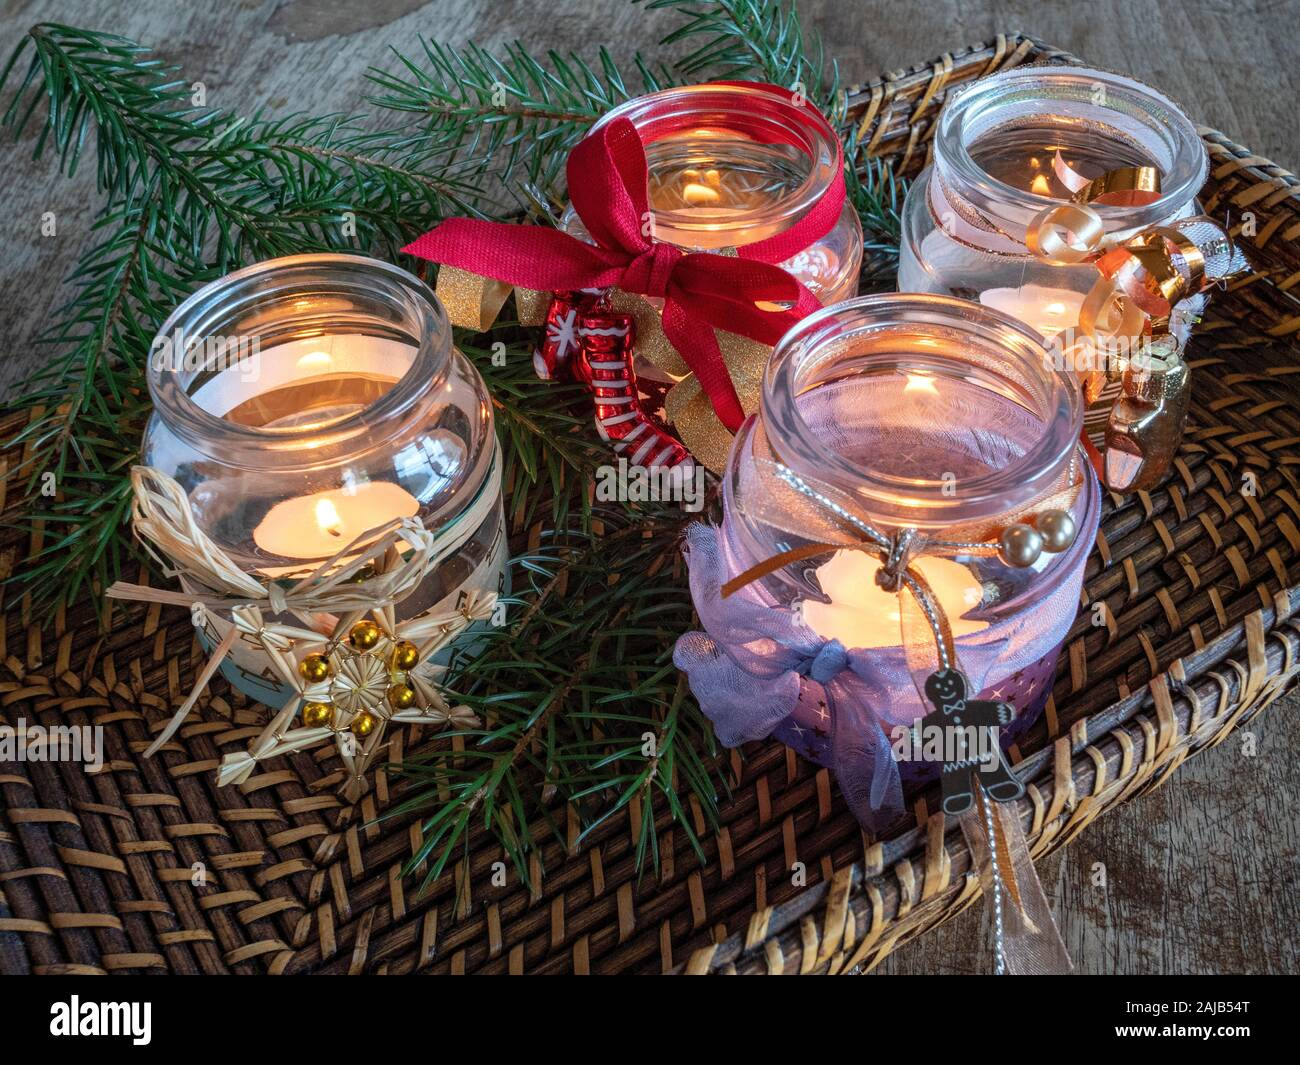 Several tea candles burning in decorated glasses on Christmas Stock Photo